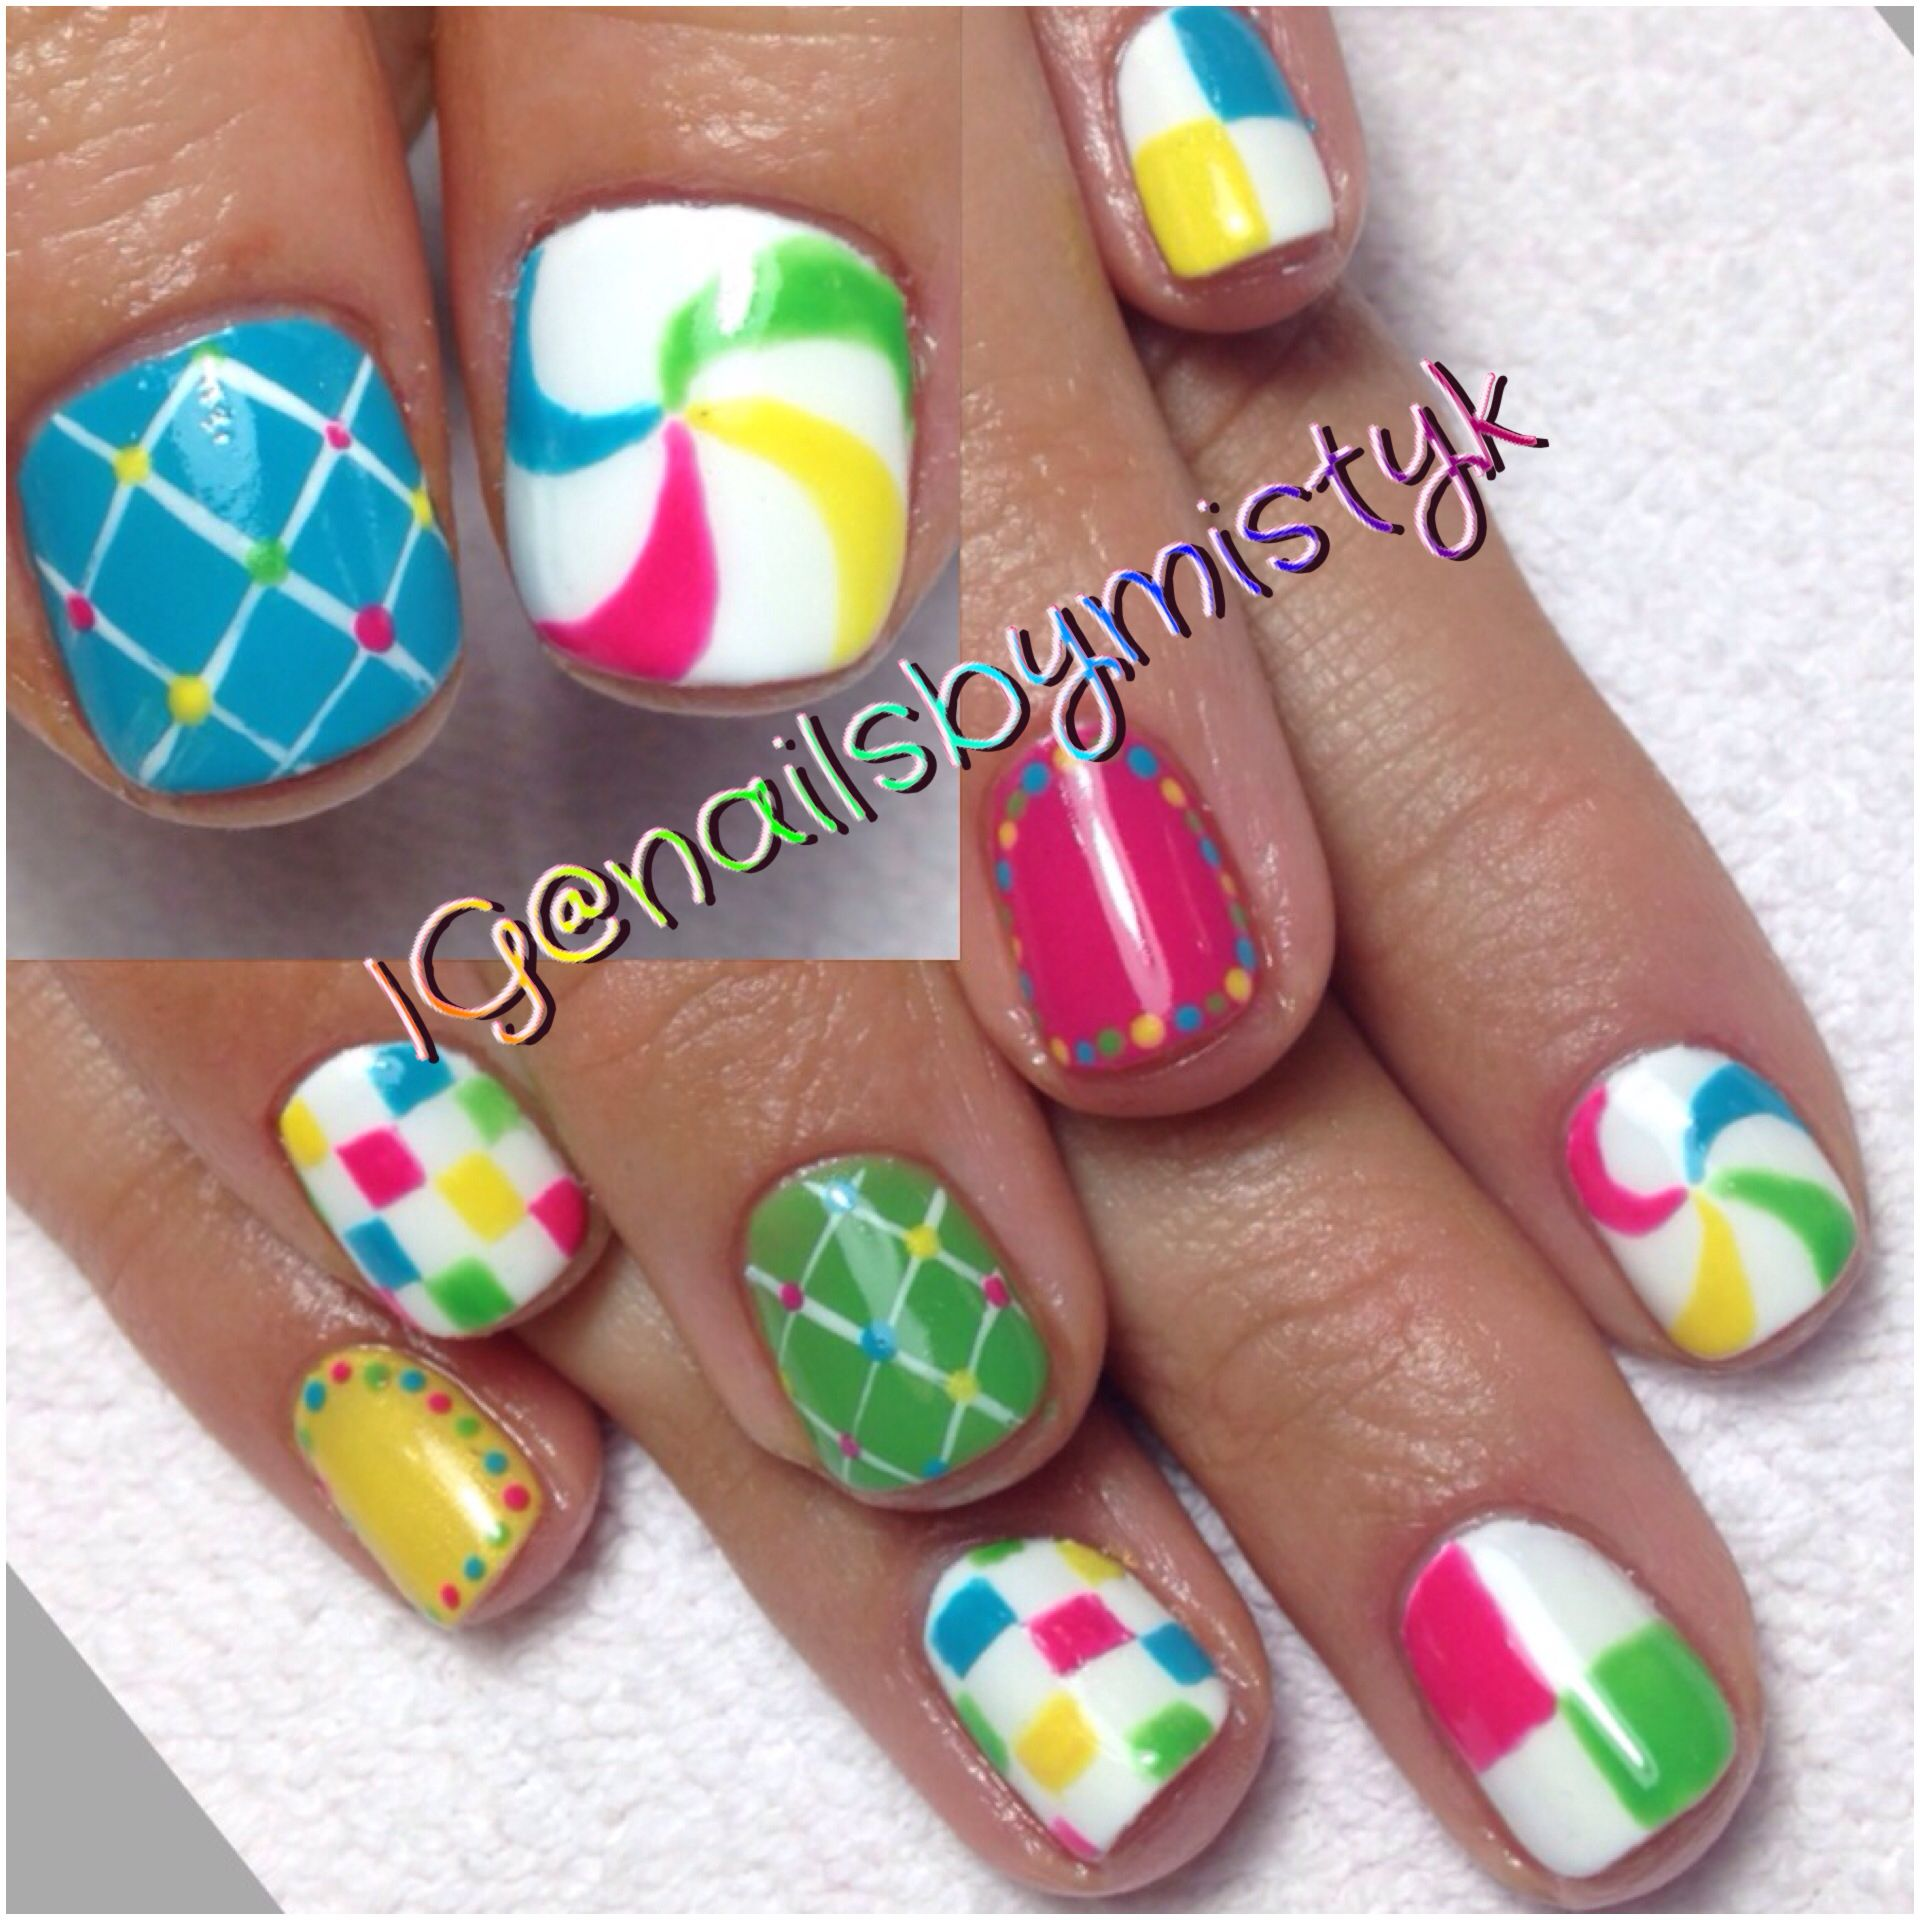 Shellac Nail Art Colorful Nail Design Spring Nail Art My Nail